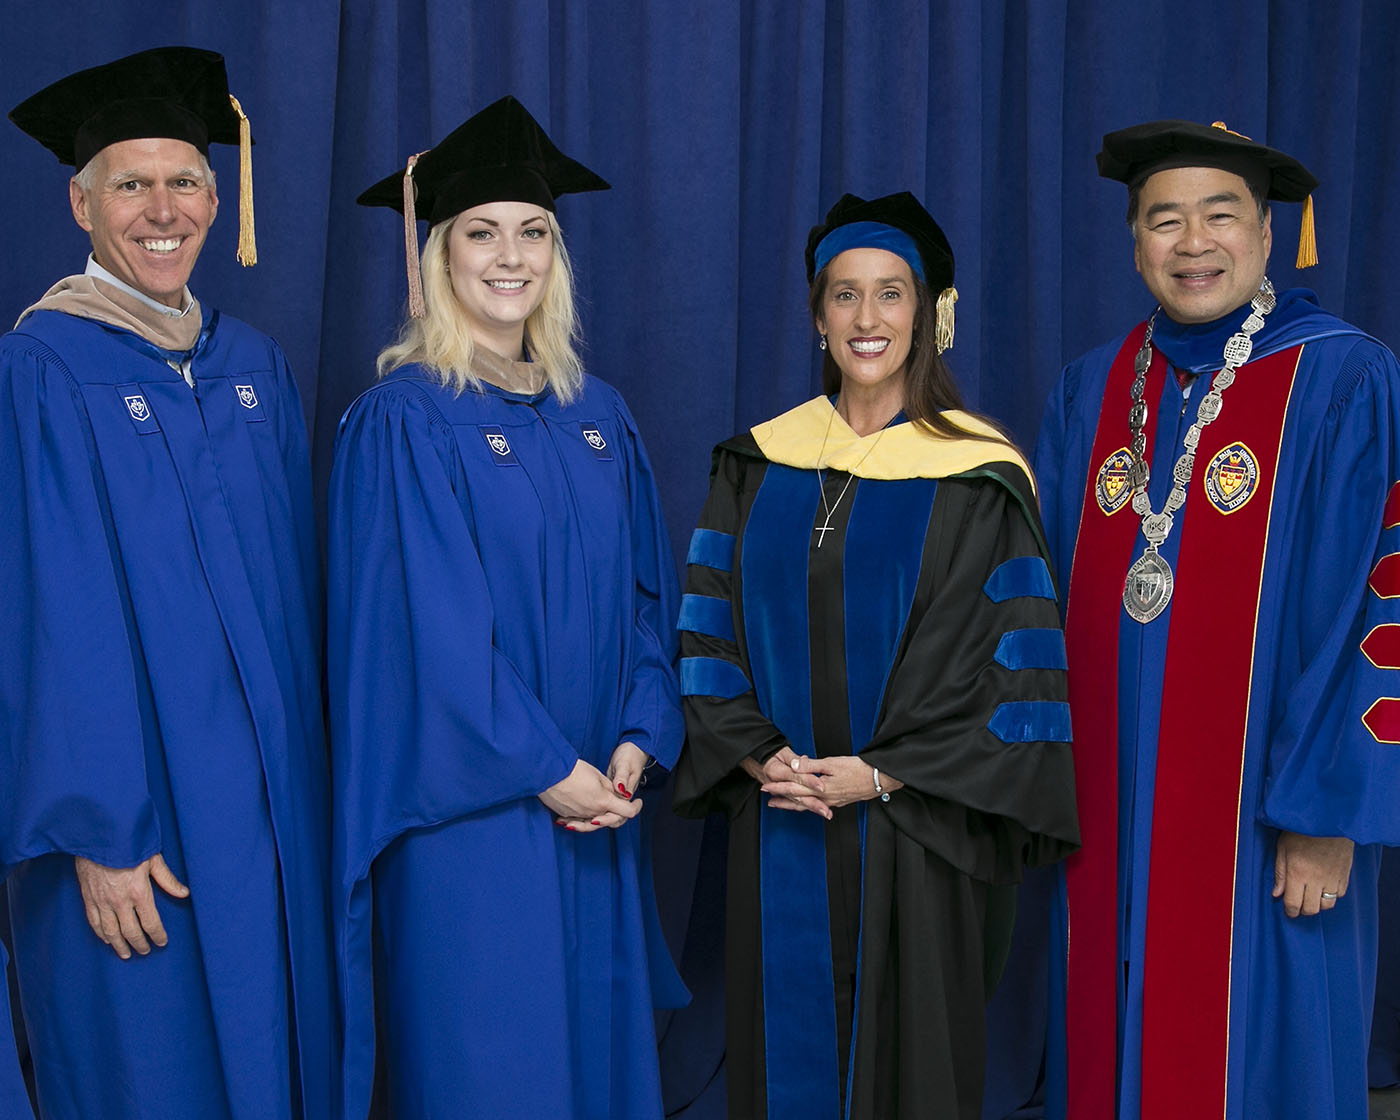 James T. Ryan III, chair of the board of trustees; Alyssa Poniatowski, Class of 2018 student speaker; Misty M. Johanson, dean of the Driehaus College of Business; and A. Gabriel Esteban, Ph.D., president of DePaul at the Wintrust Arena